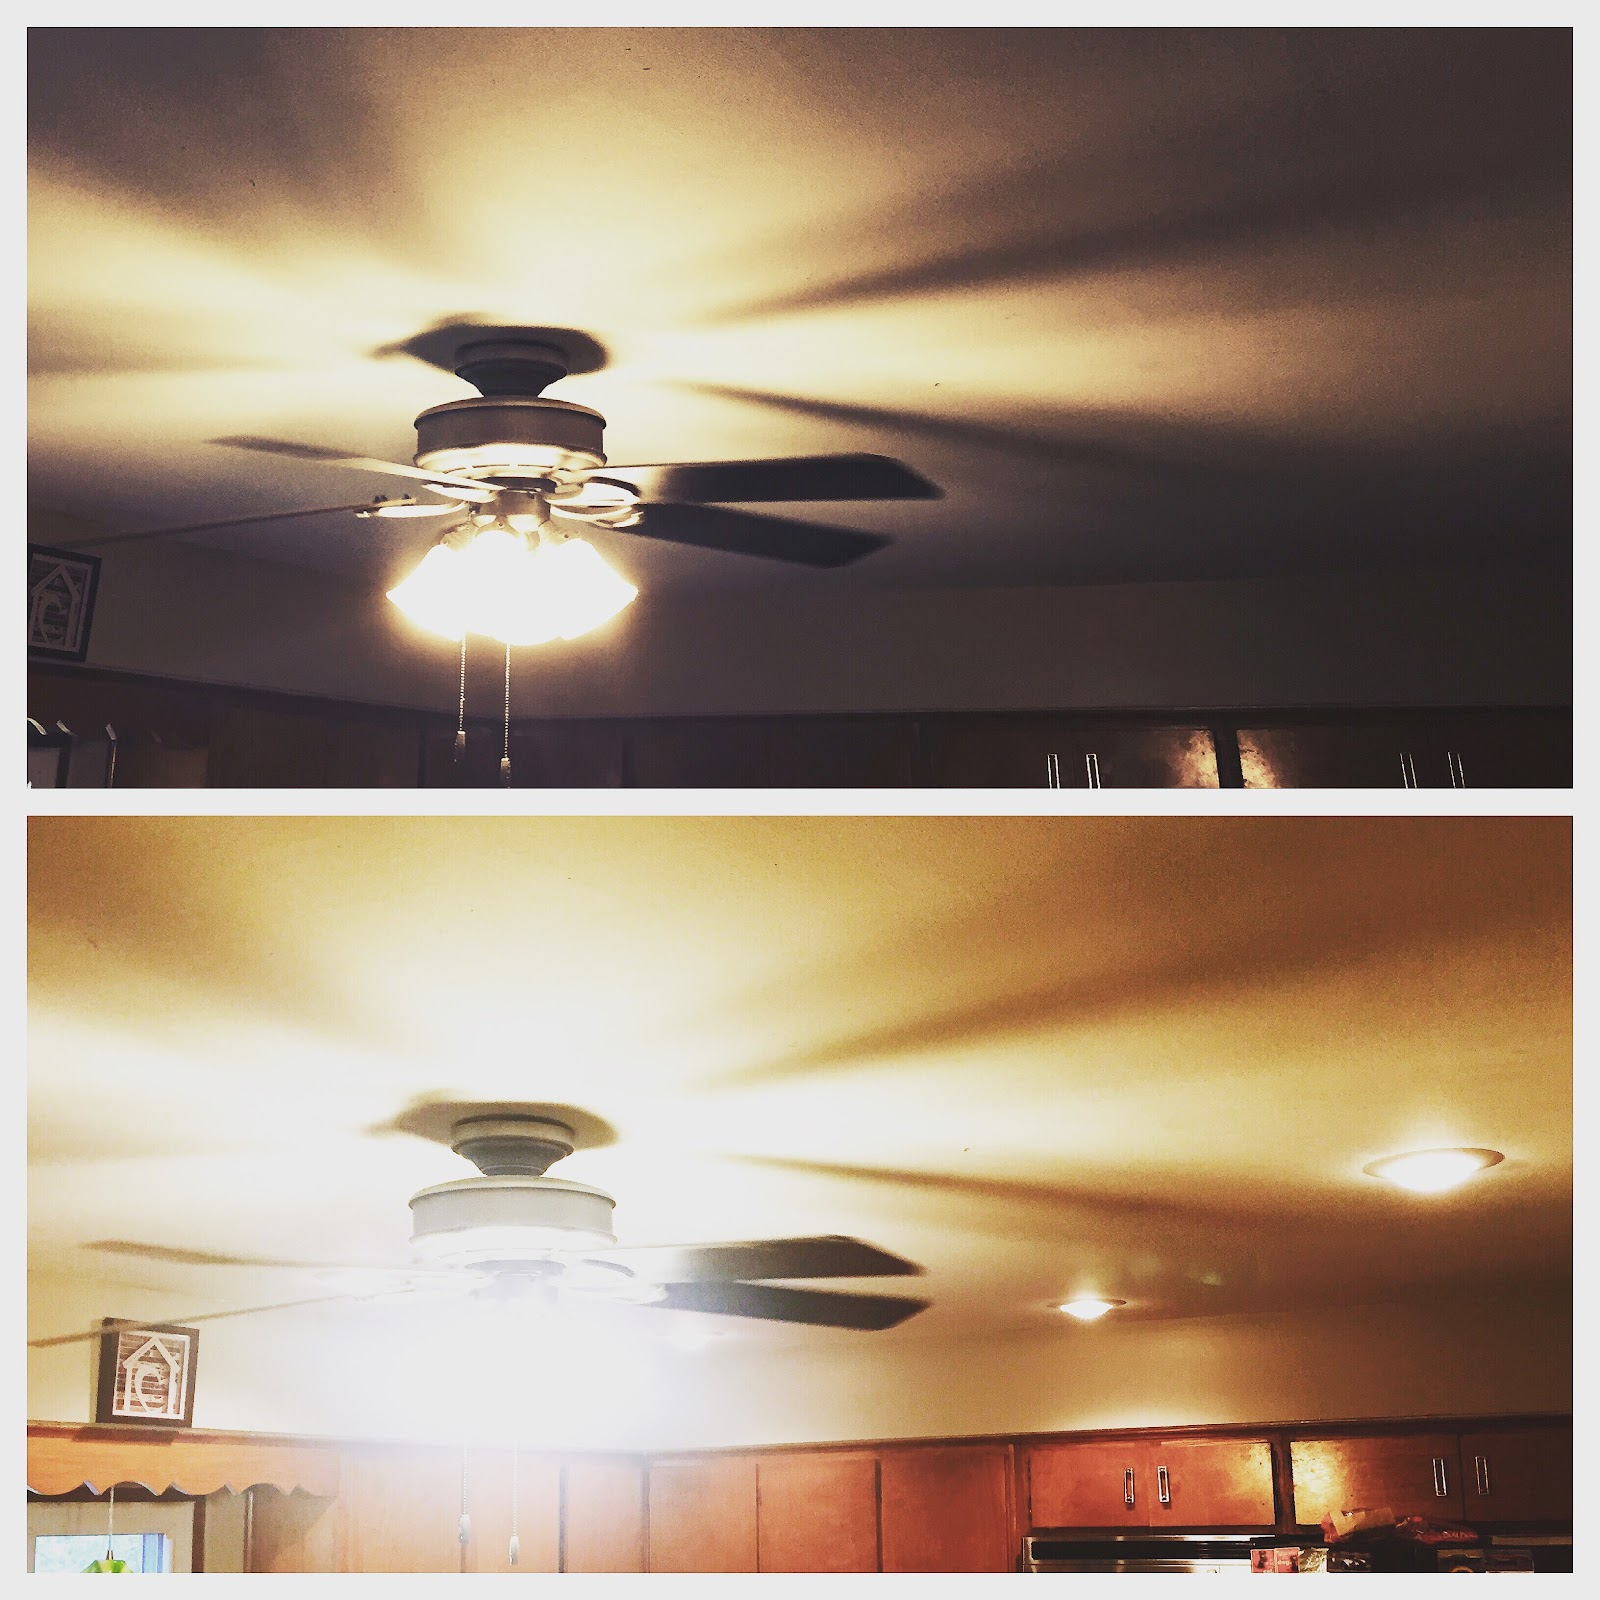 May 2017 - new recessed lighting in the kitchen. So much brighter!!